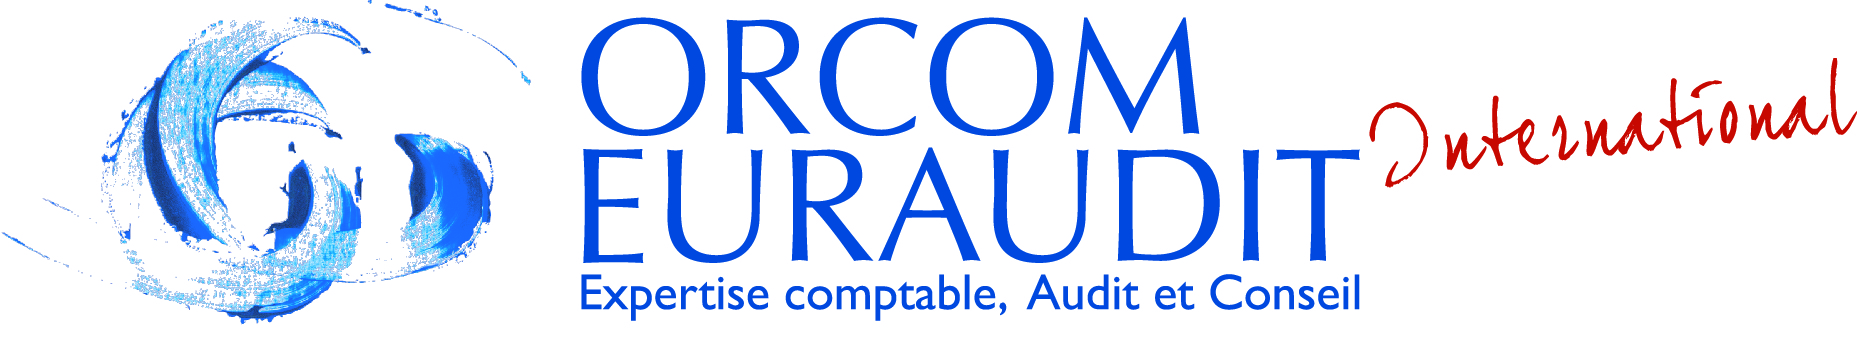 Orcom Euraudit International